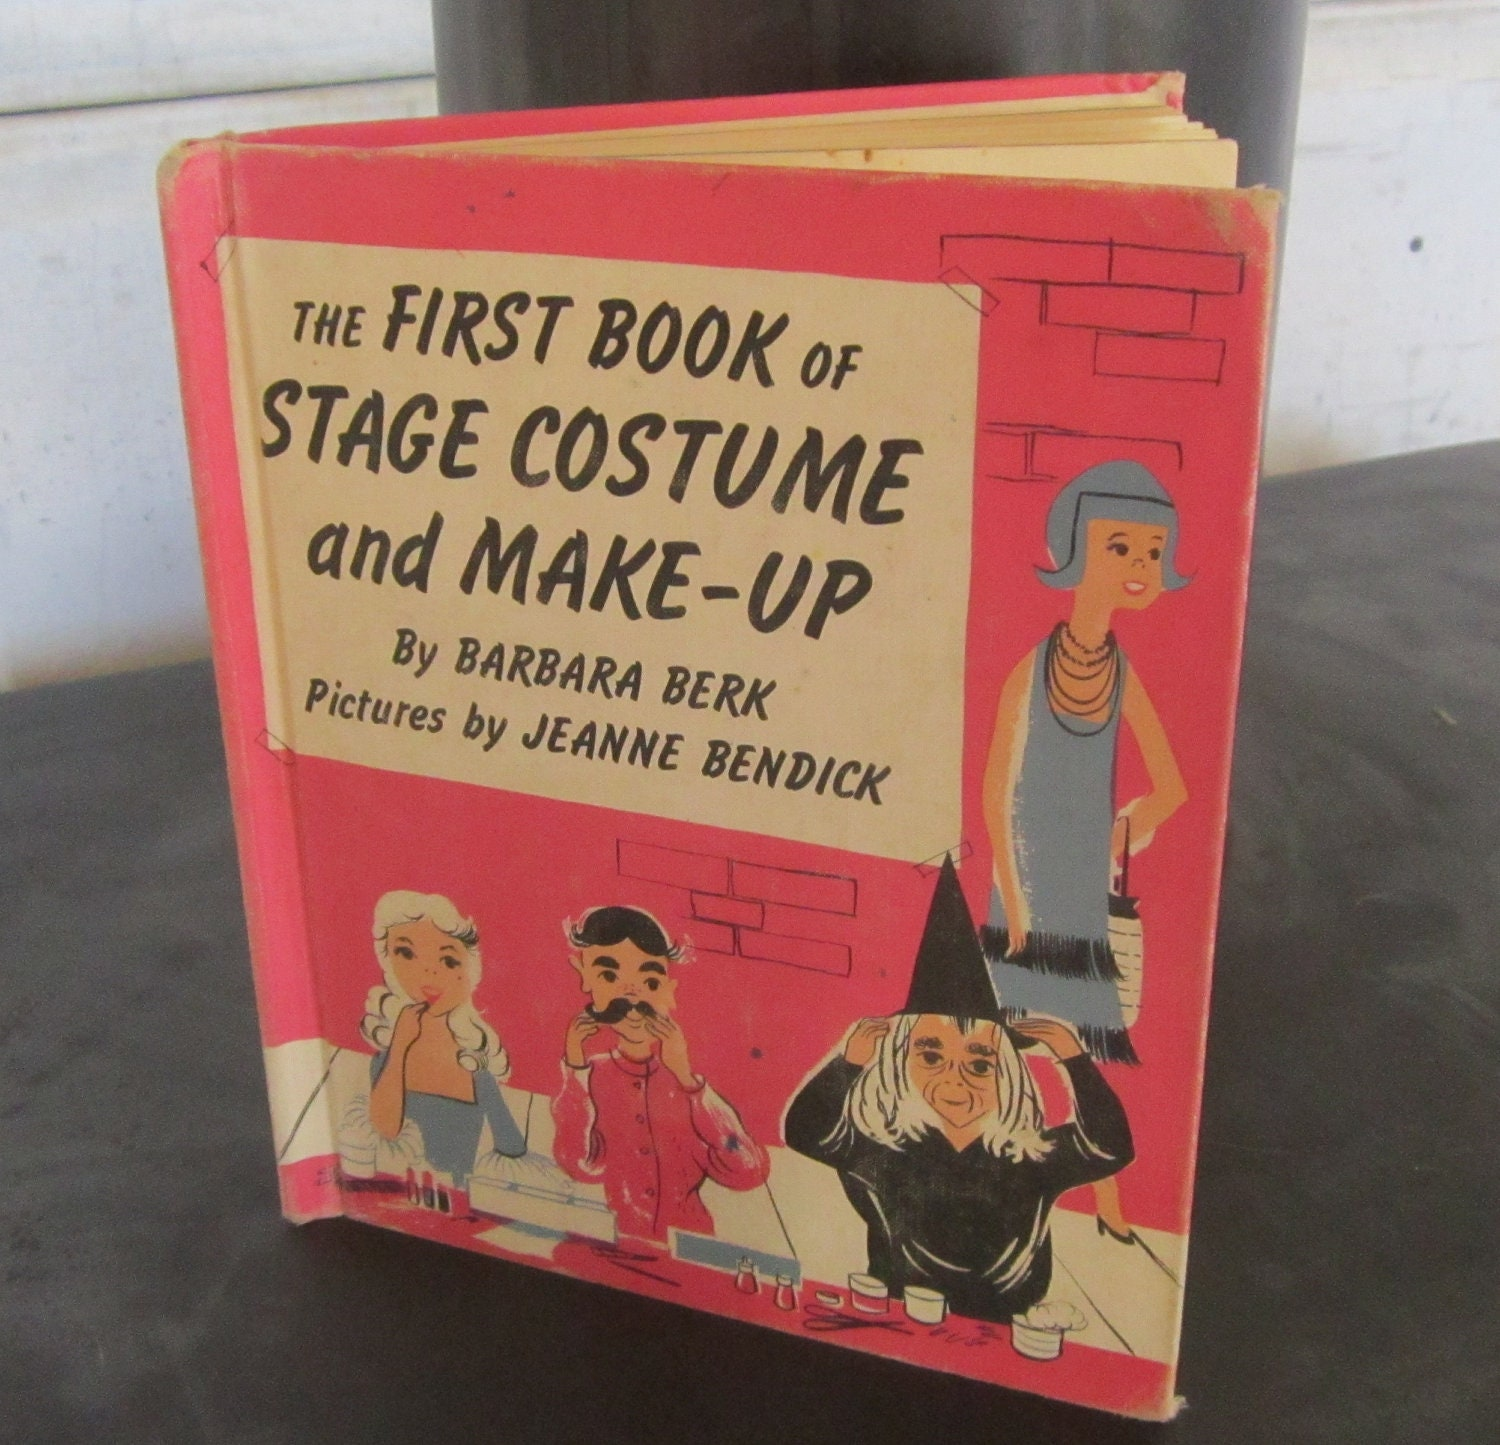 Stage Costume and Make-Up (The First Book of Series) Barbara Berk